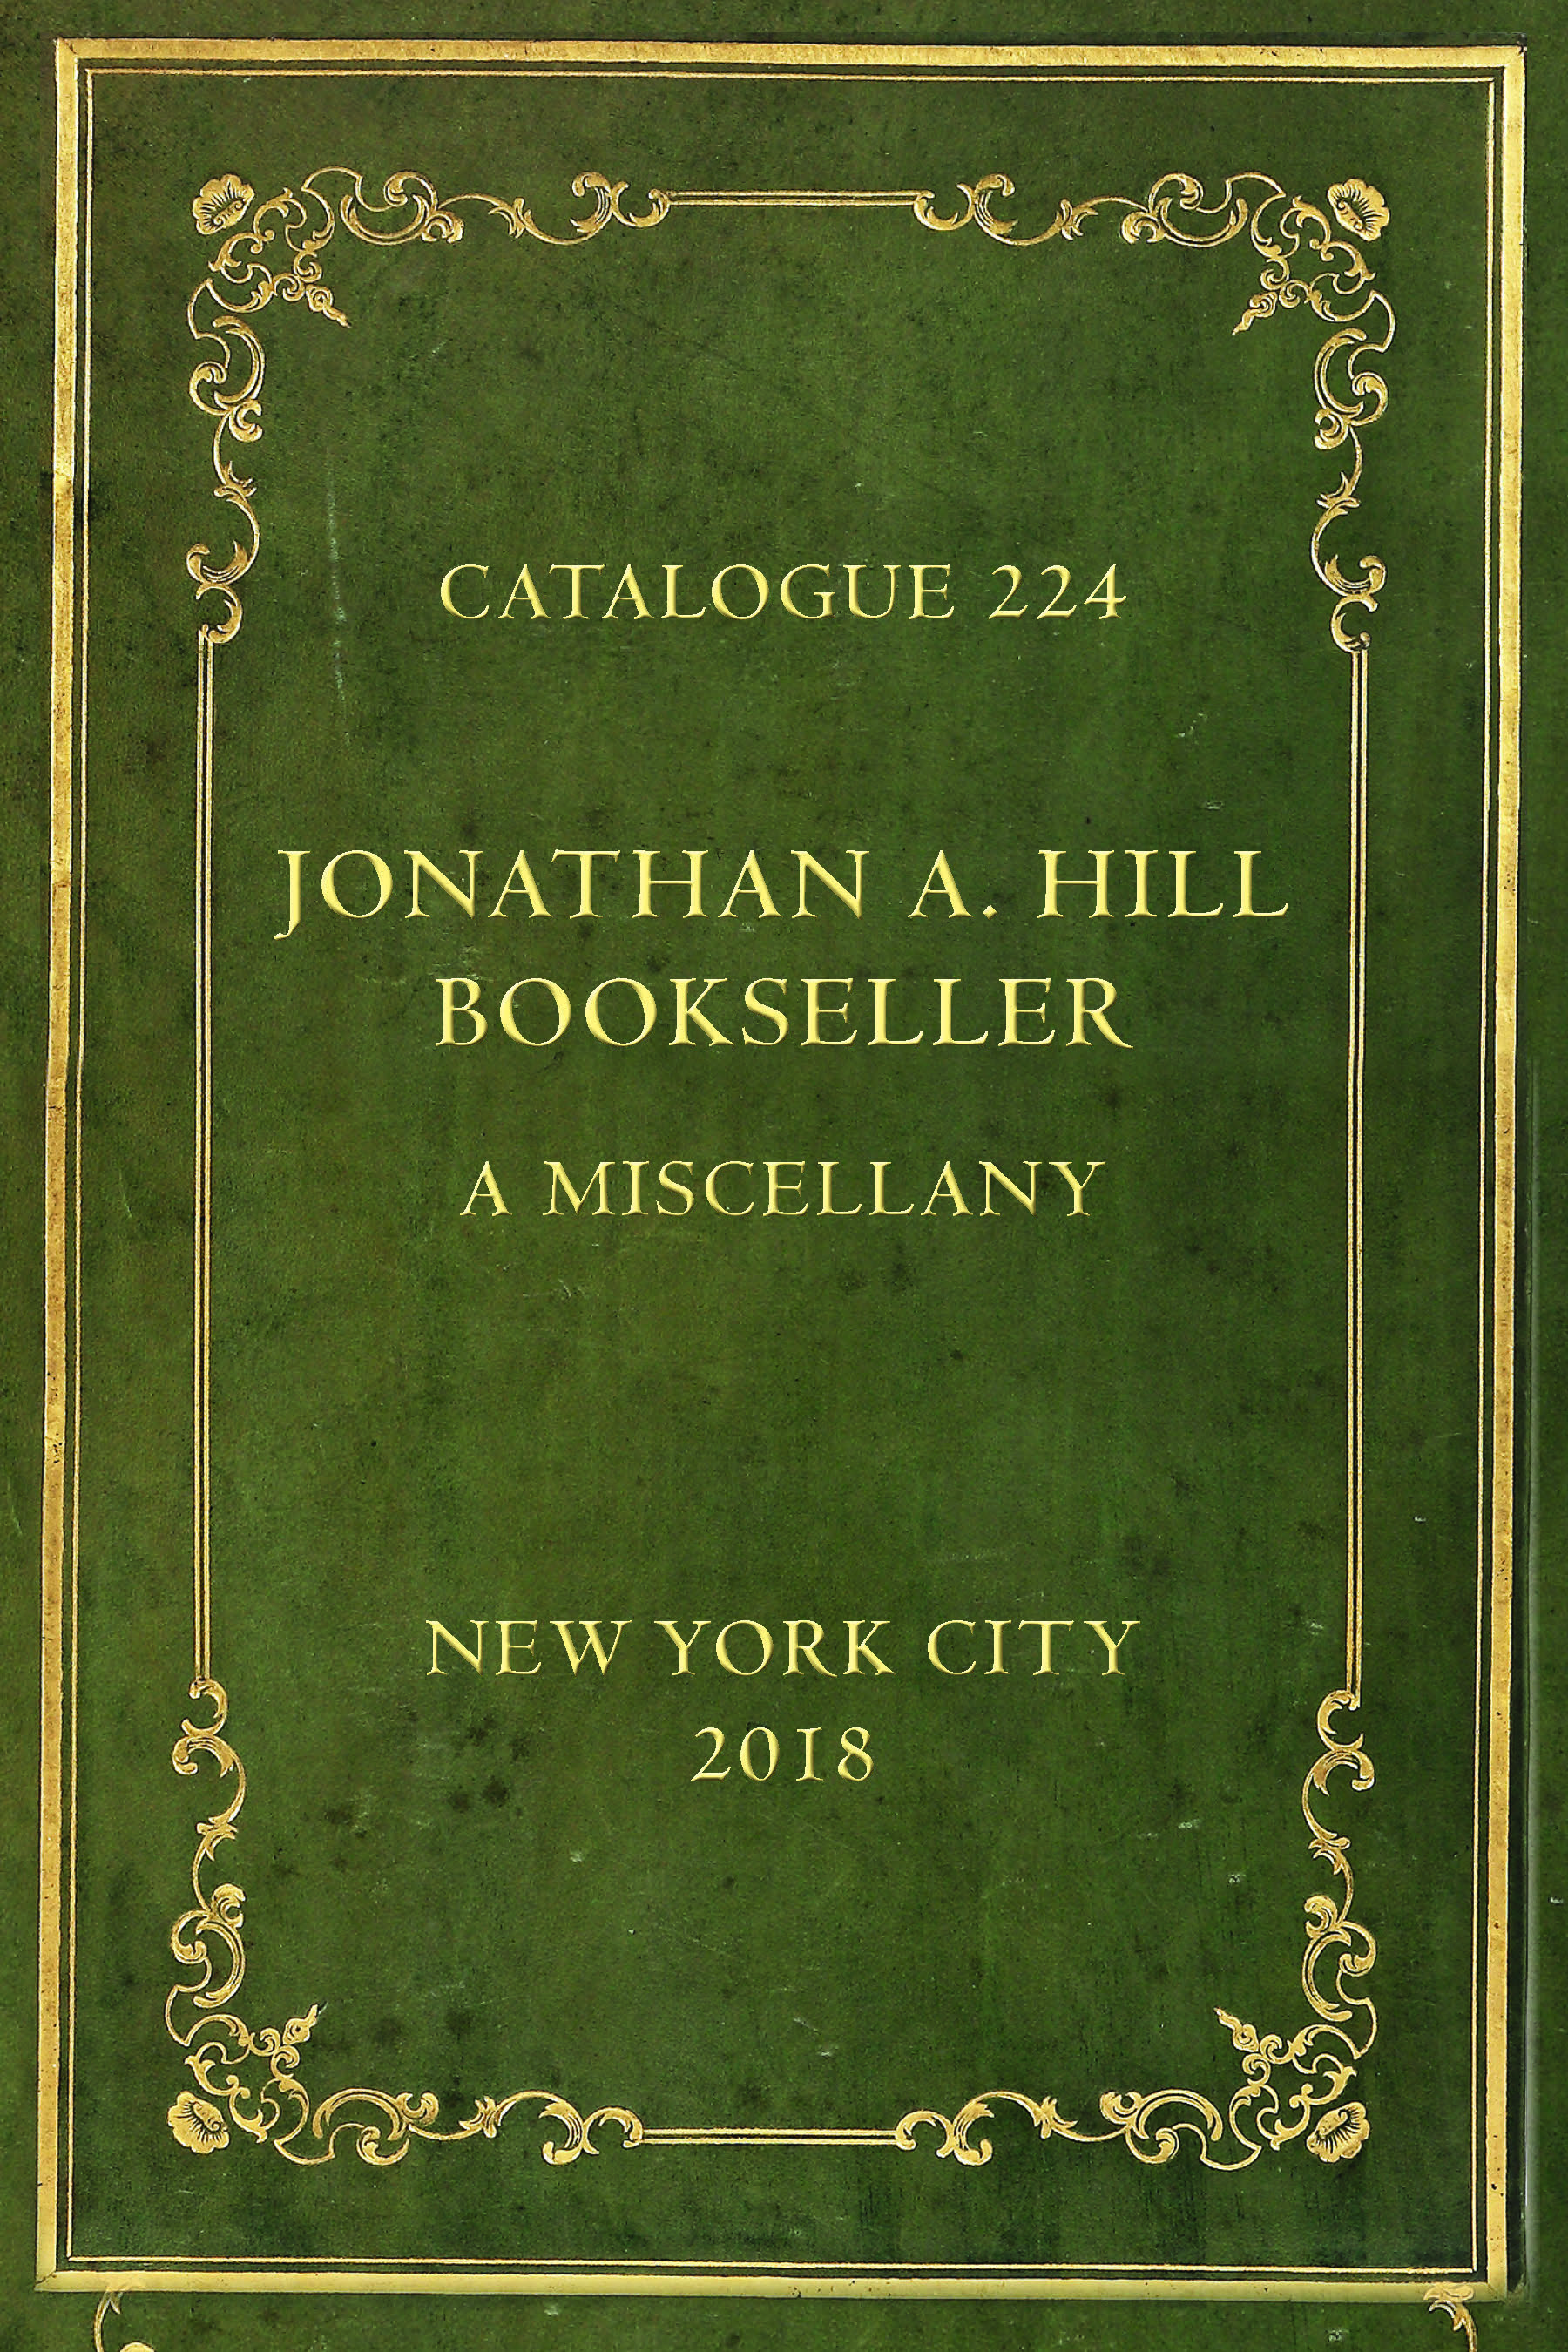 Catalogue 224